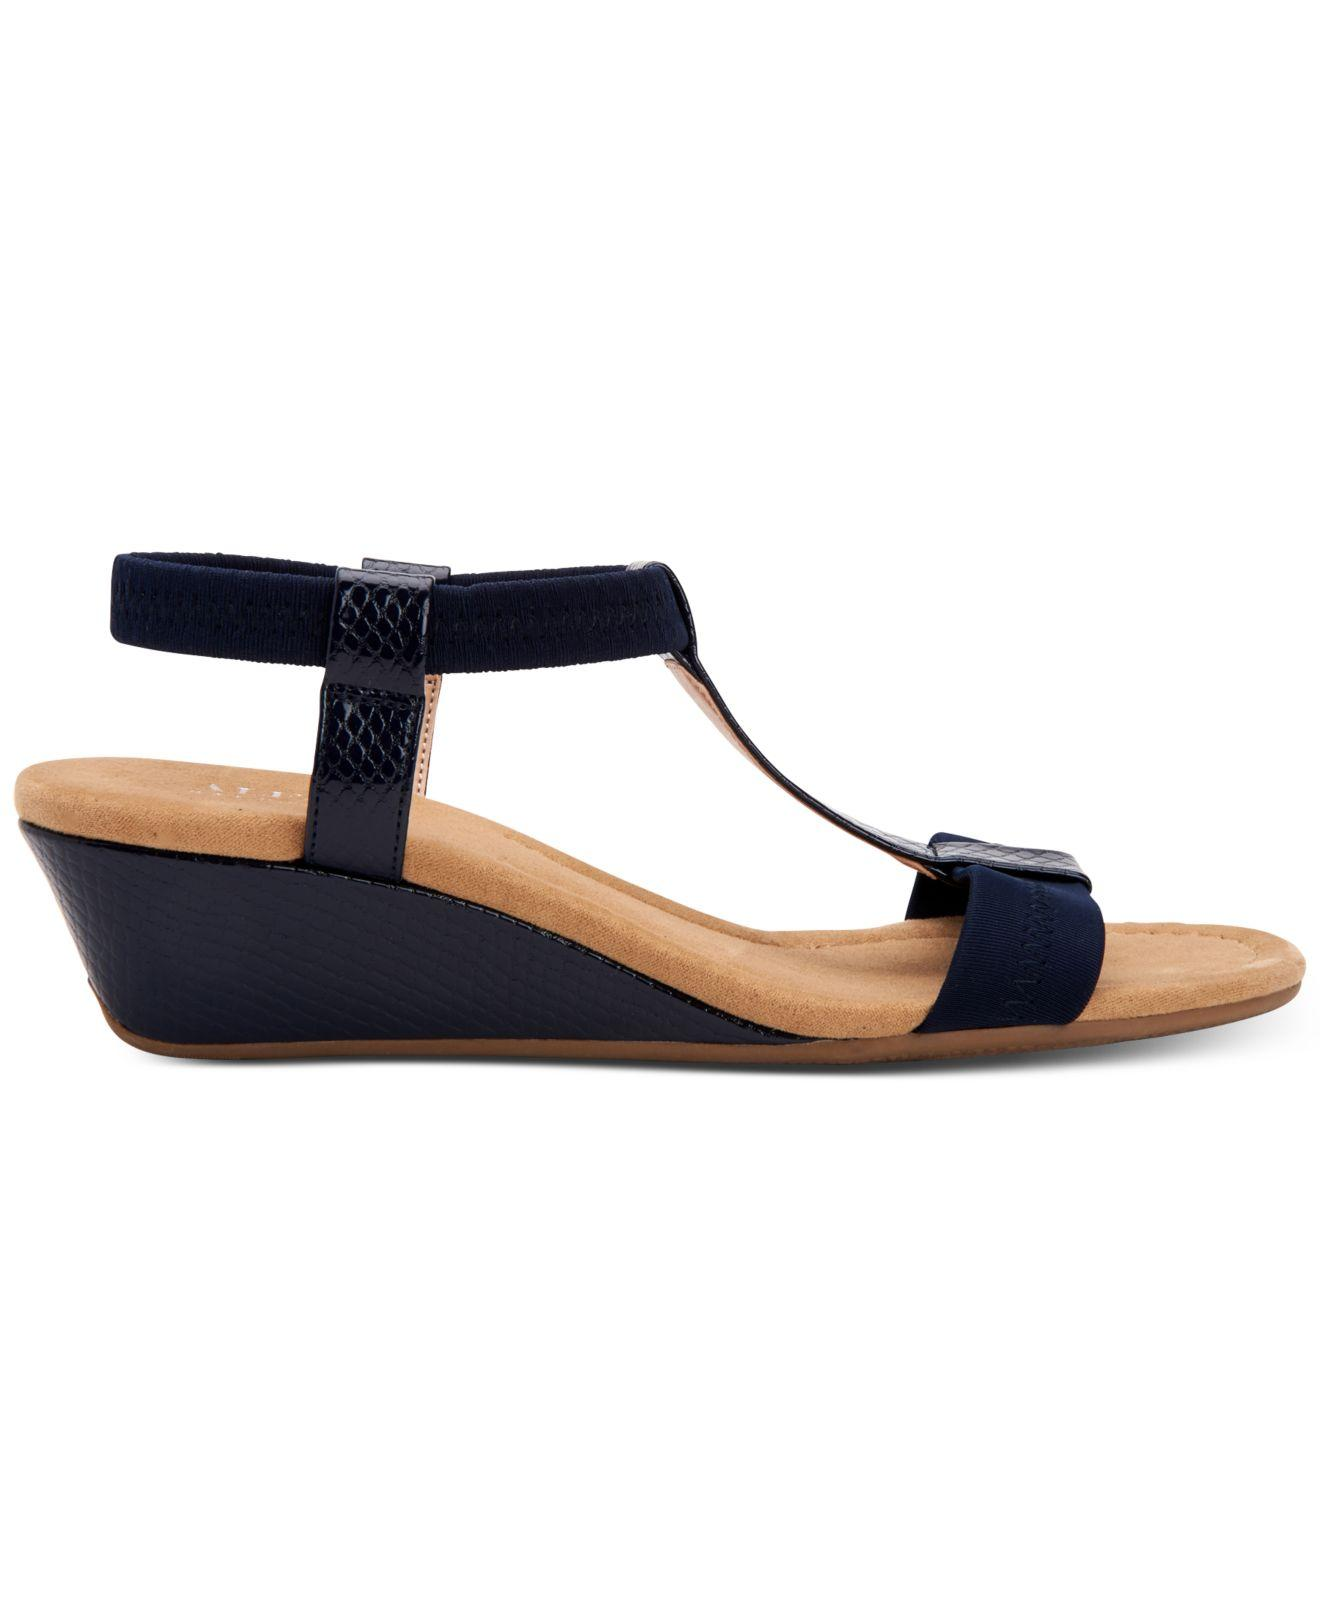 a5a73bf5261 Alfani Voyage Wedge Sandals in Blue - Lyst